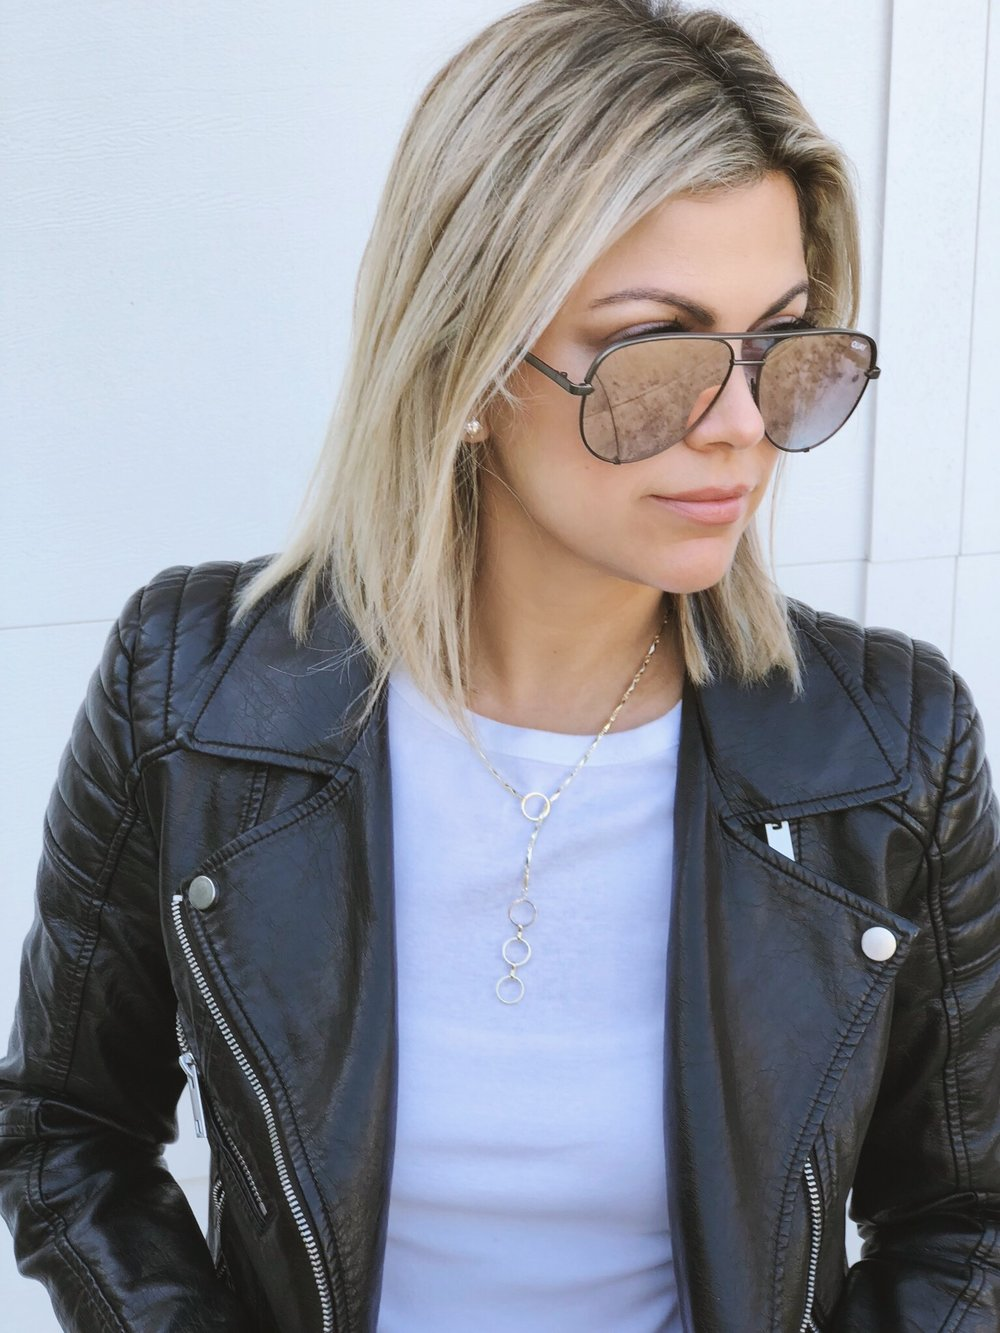 Meet Crystal, fashion + lifestyle Blogger behind @Crystal.Levy